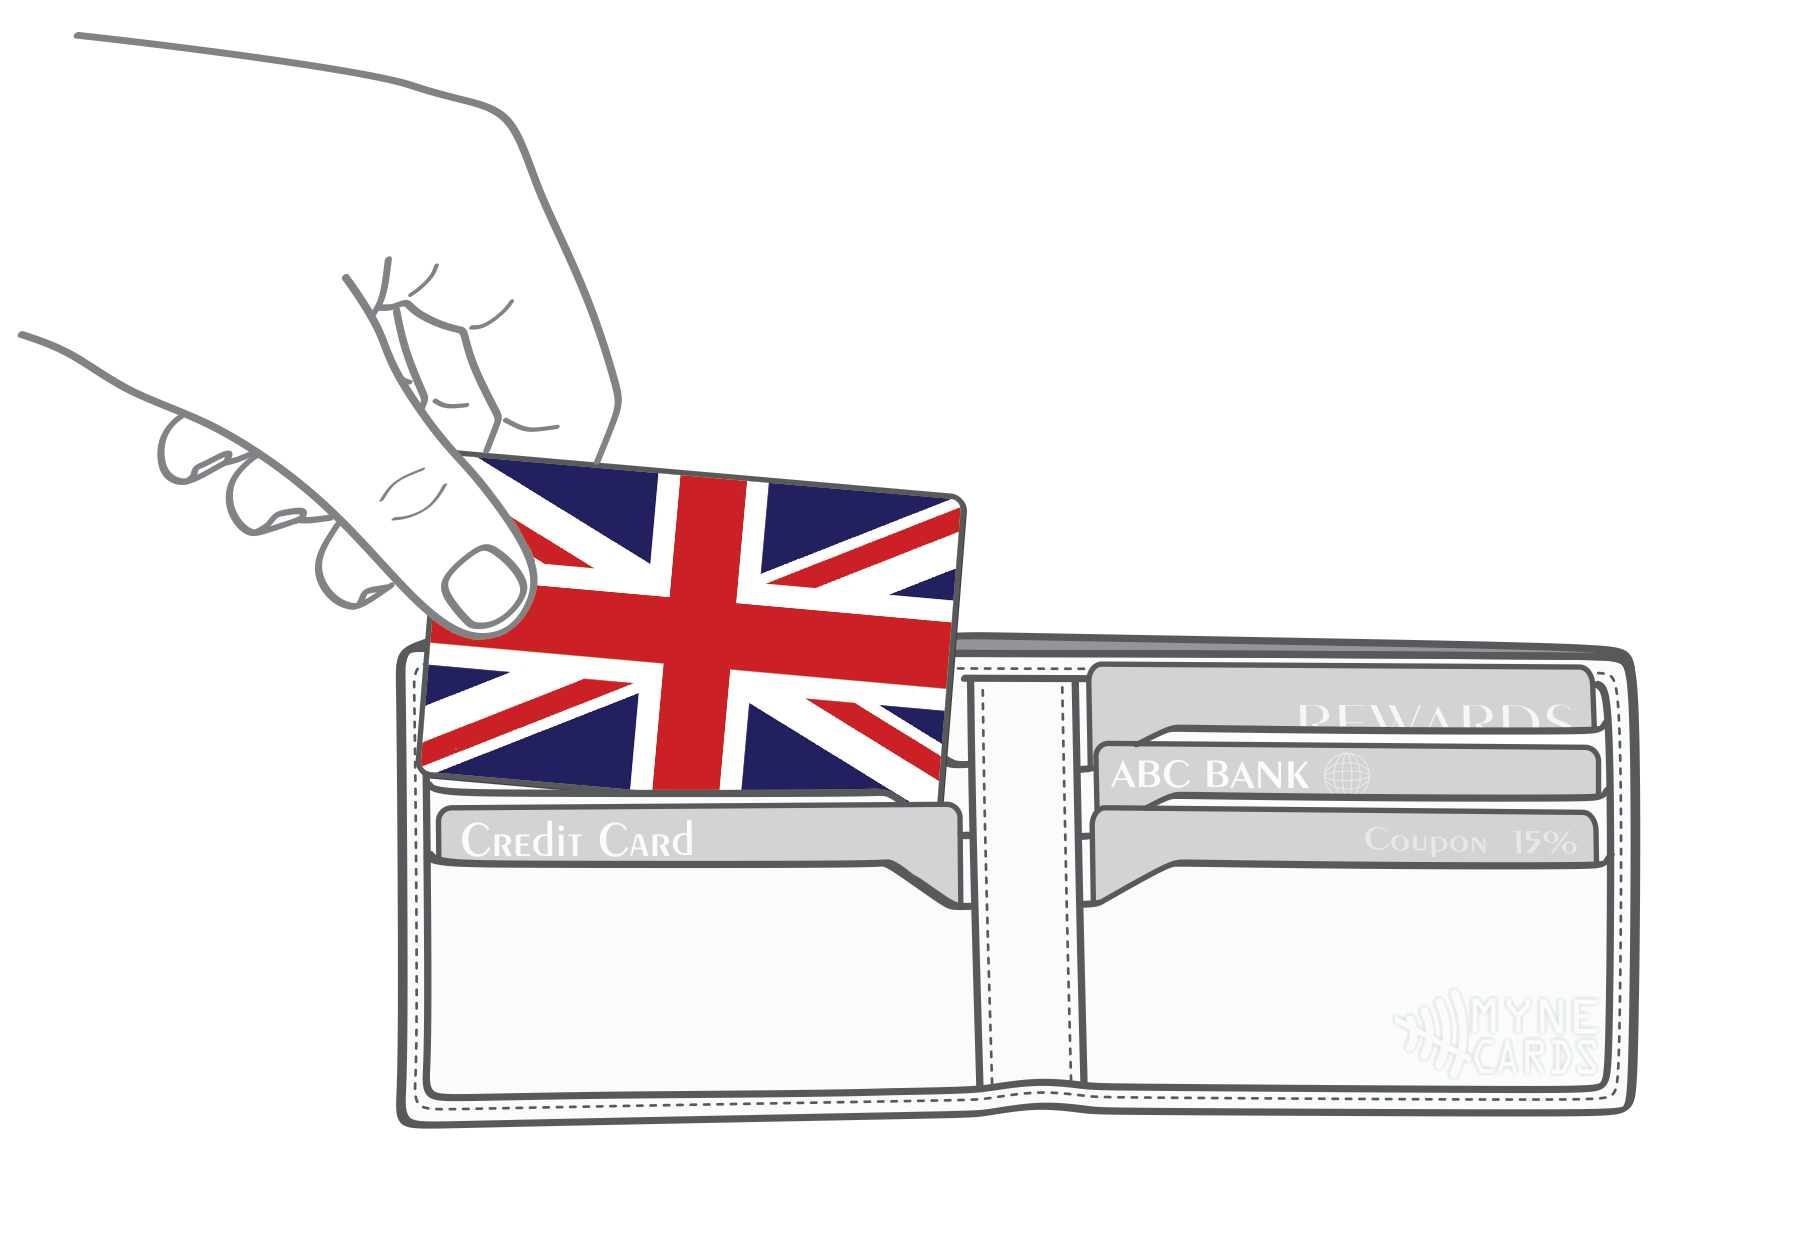 mc-1801-rfid-card-union-jack-copy.png